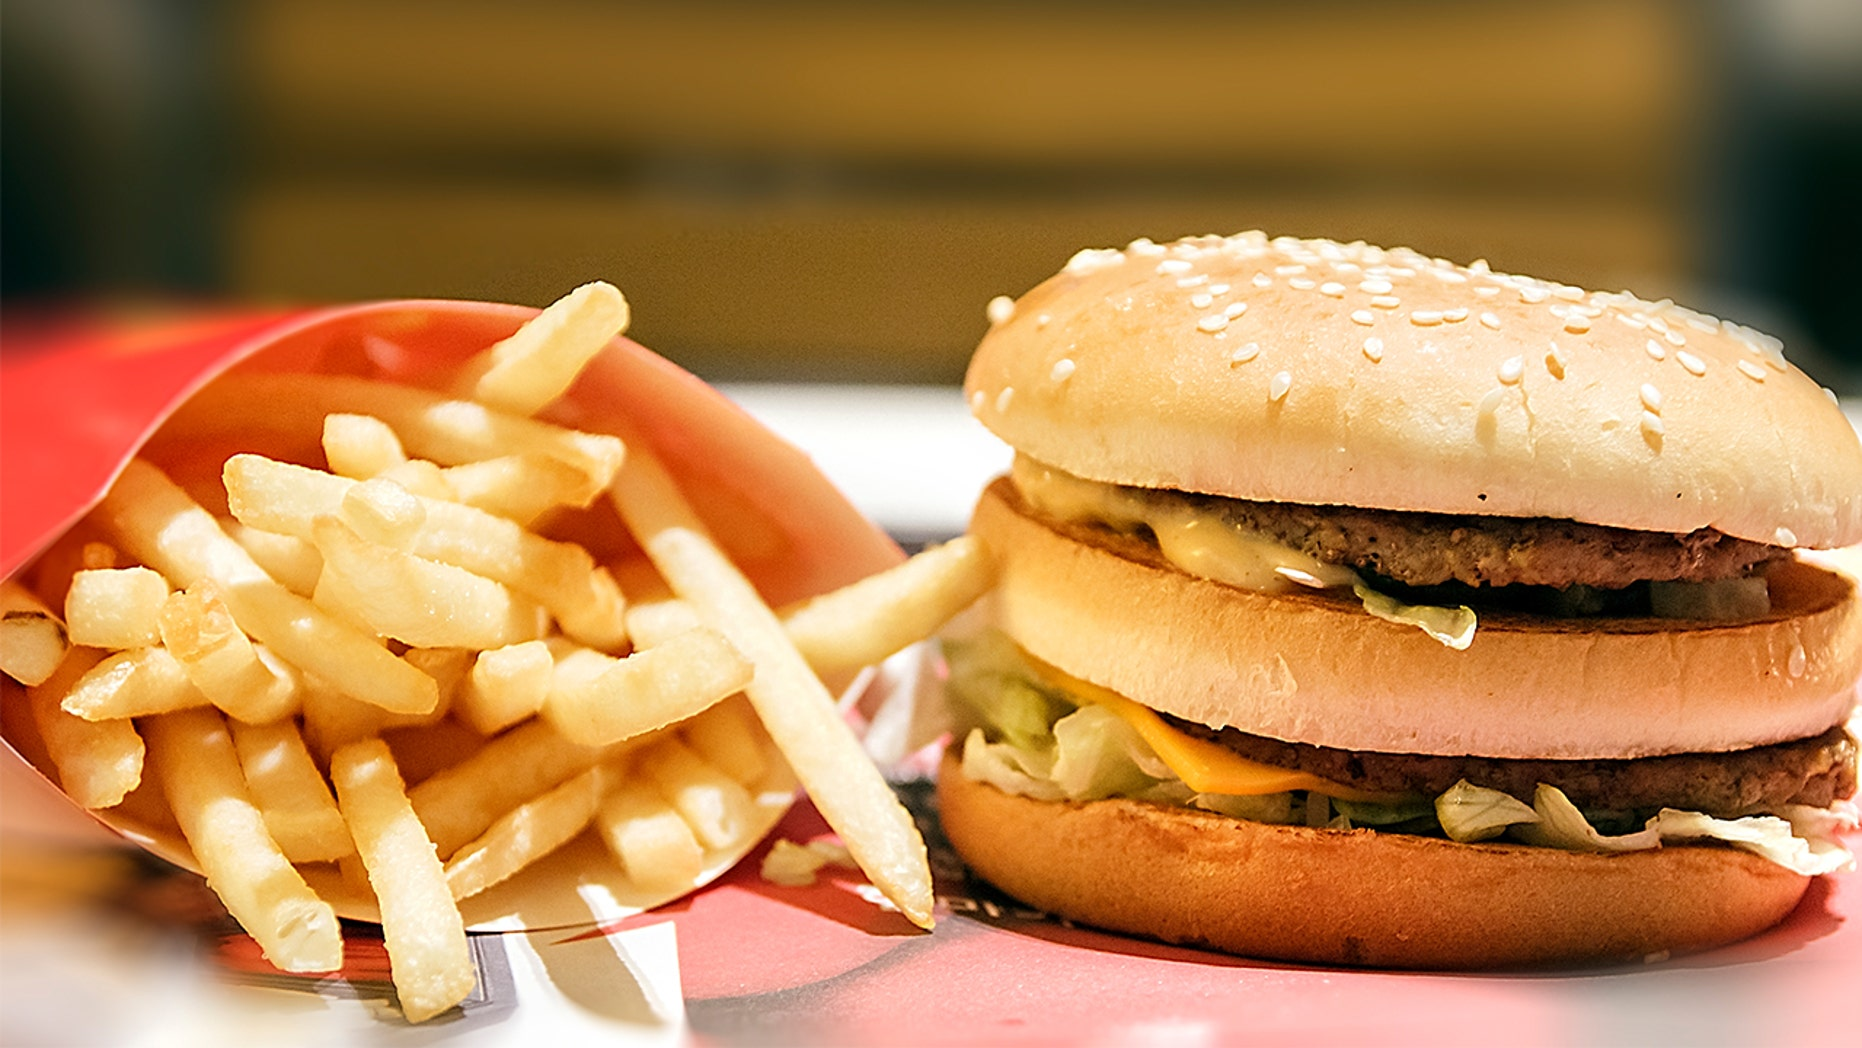 McDonald's secret Big Mac sauce recipe was allegedly leaked online and has a long list of ingredients